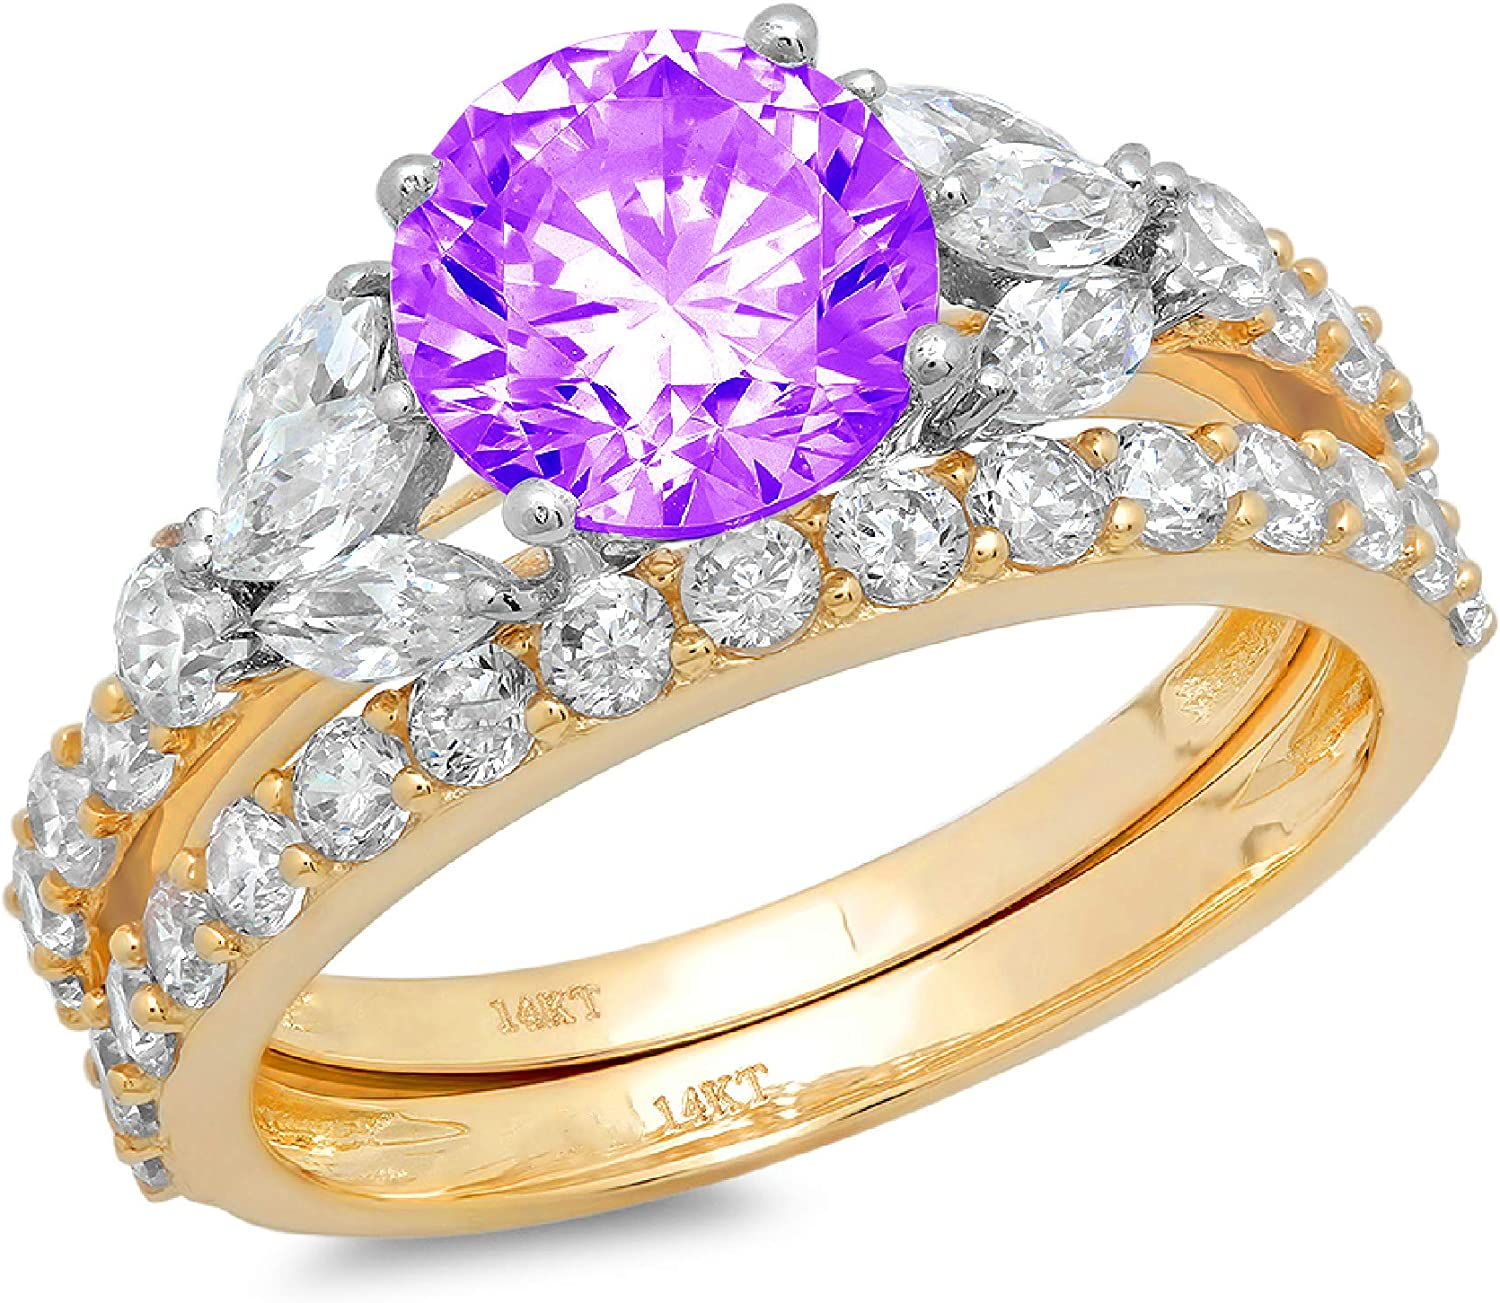 2.66ct Round Marquise Cut Solitaire 3 stone With Accent VVS1 Ideal Natural Purple Amethyst Engagement Promise Designer Anniversary Wedding Bridal Ring band set 14k 2 tone Gold